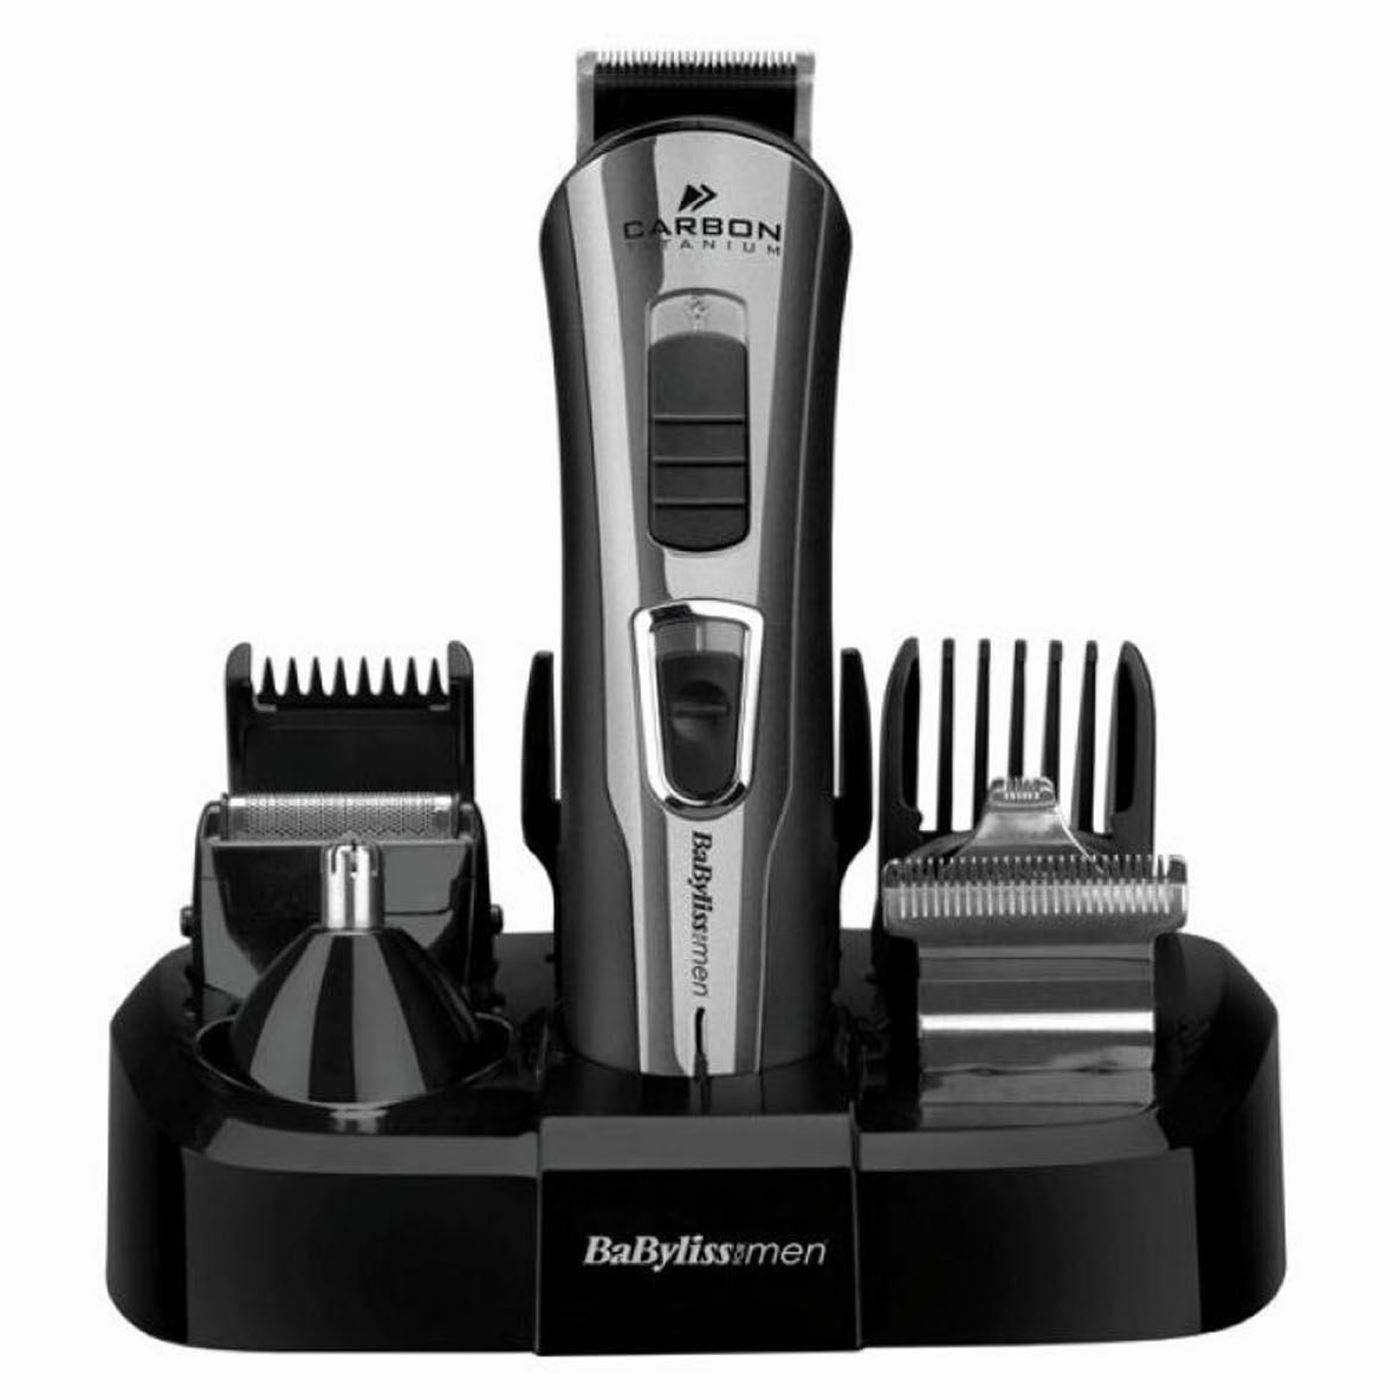 BaByliss 7425CU 10-in-1 Carbon Titanium Face & Body Grooming Kit For Men | Black |